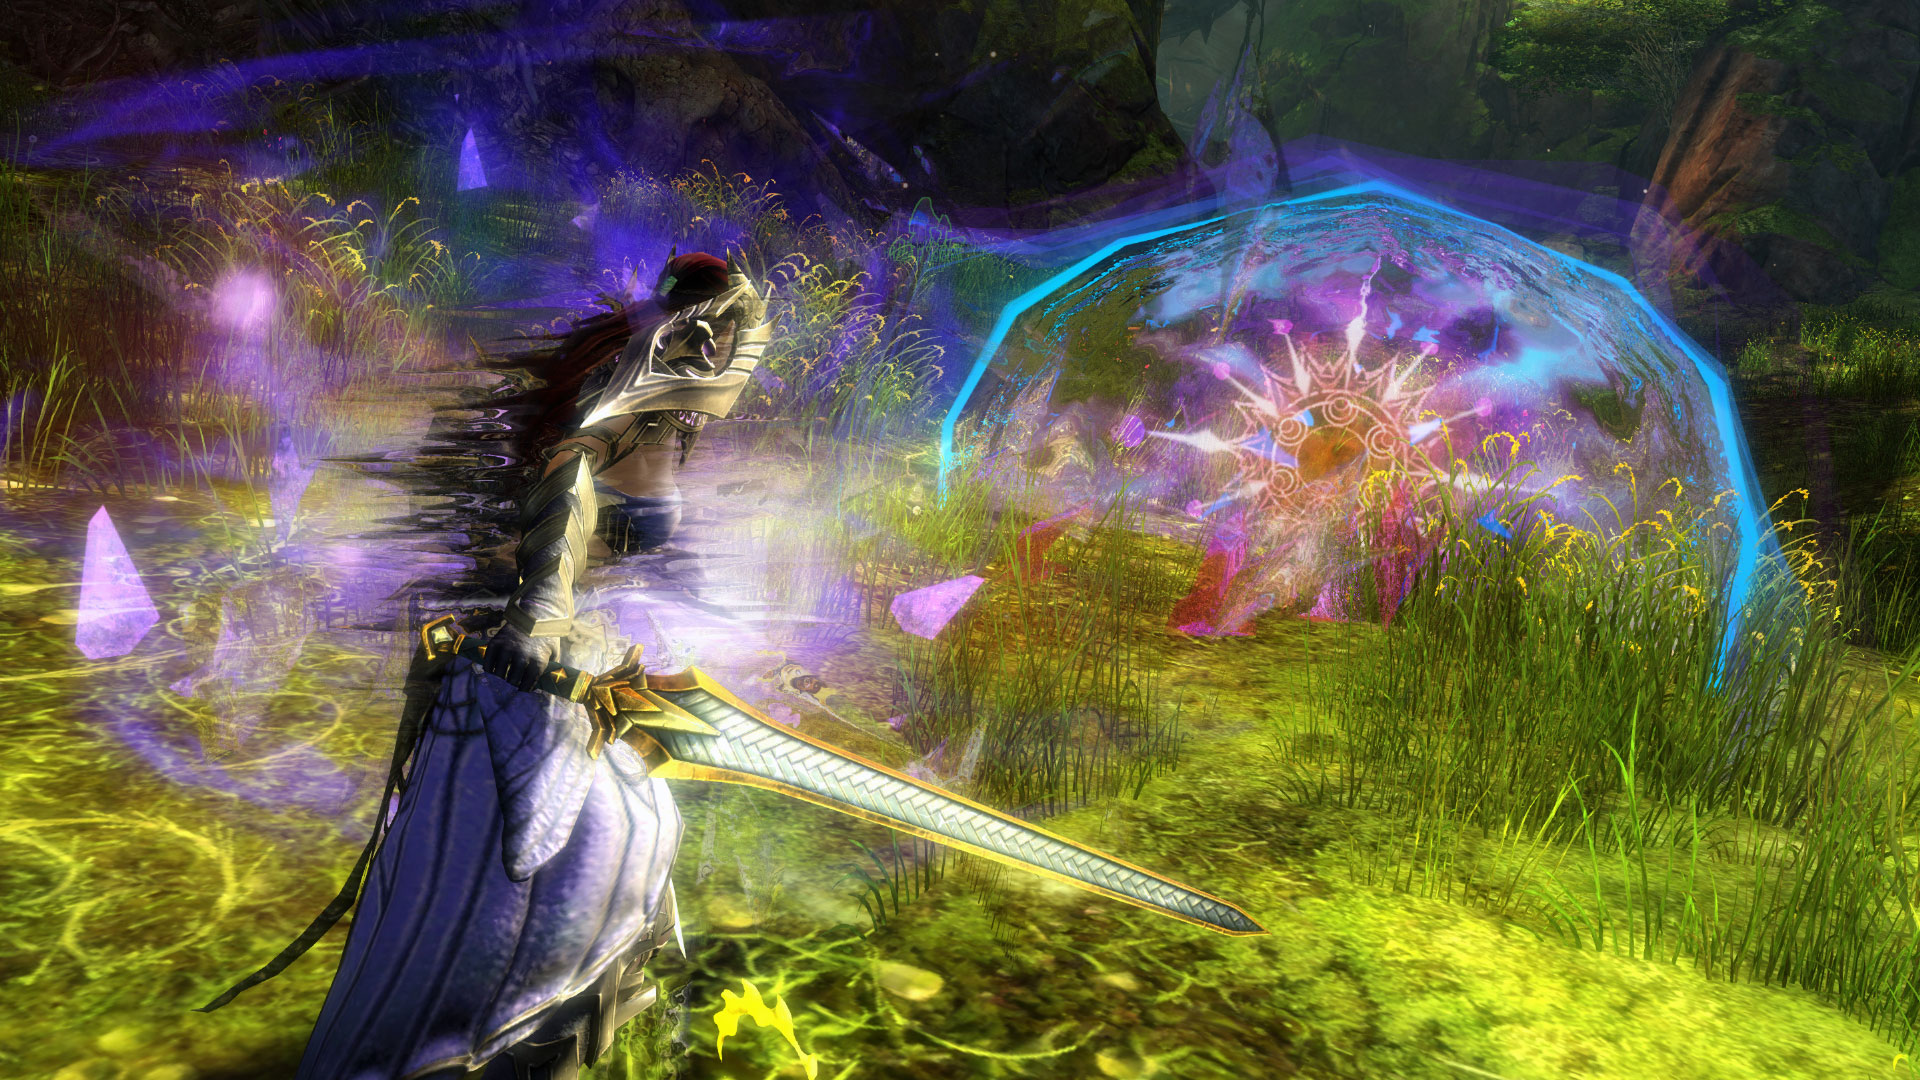 Is there going to be a beta weekend event for guildwars 2 on may 25?